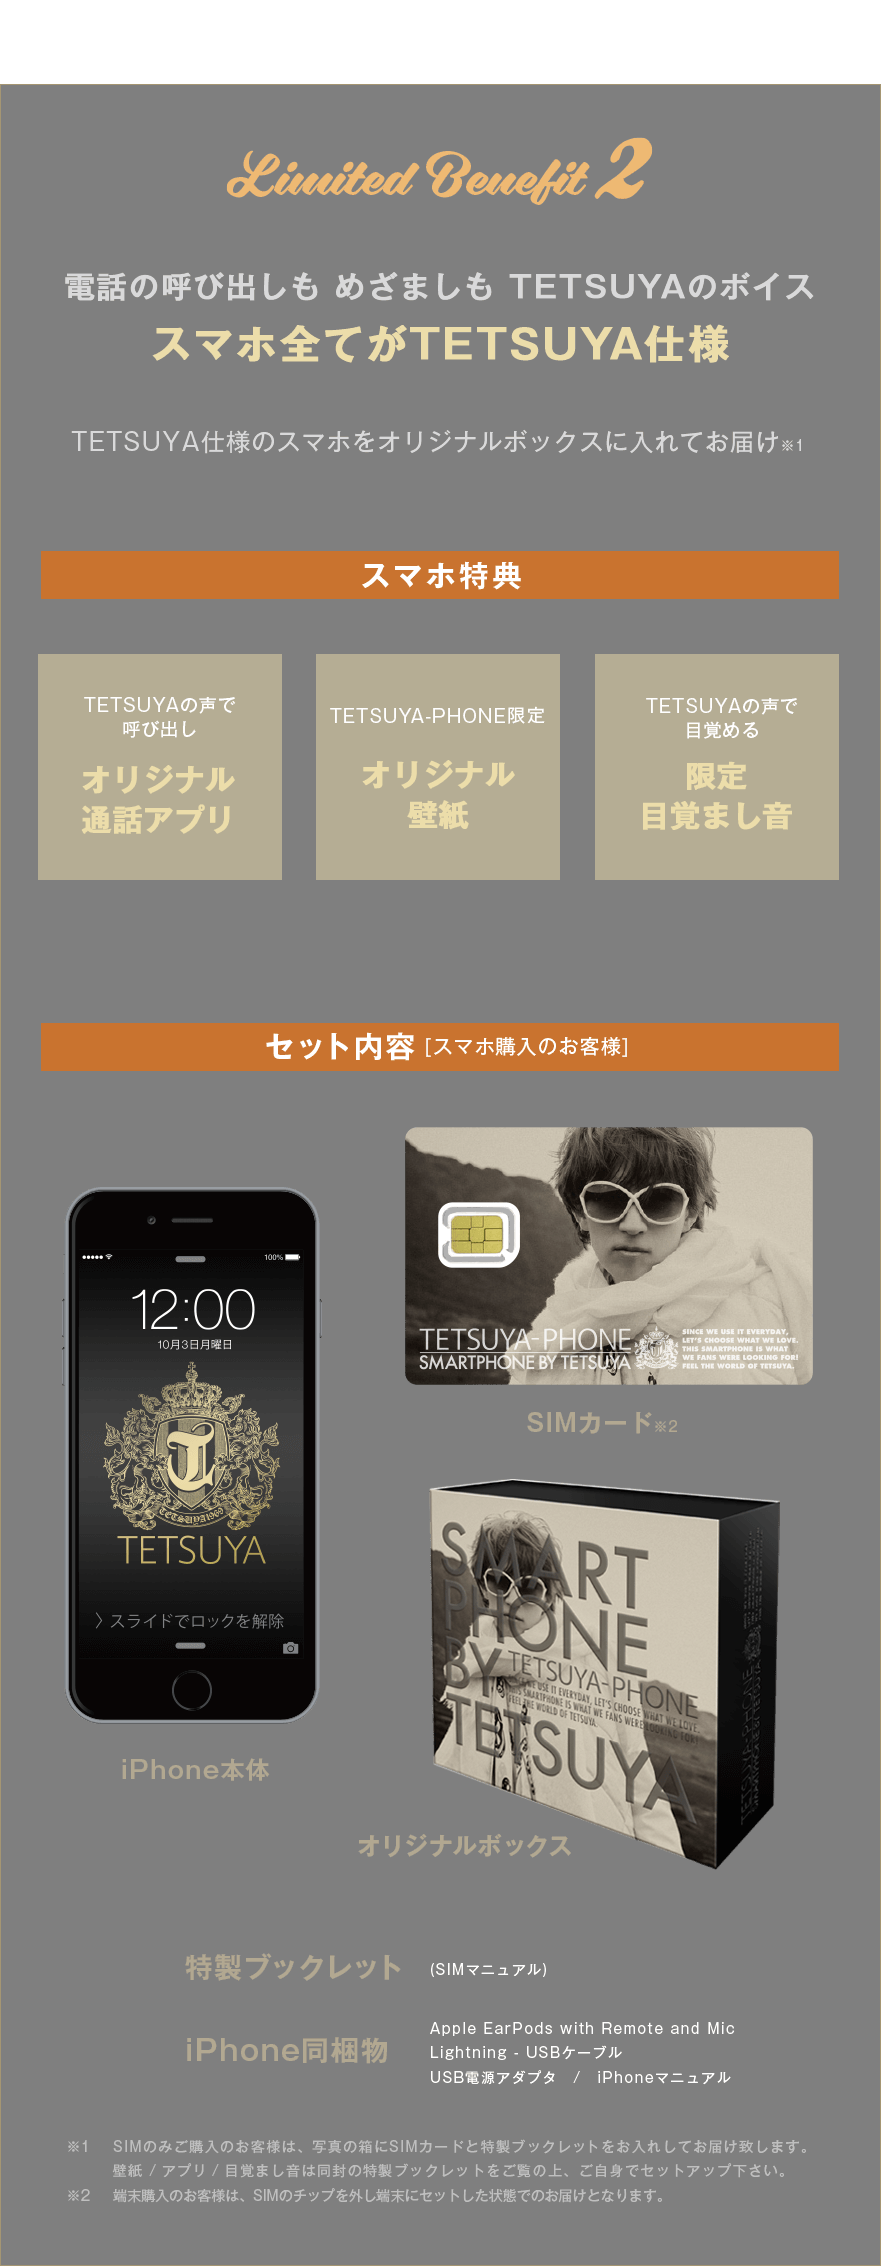 tPhone Limited Benefit2